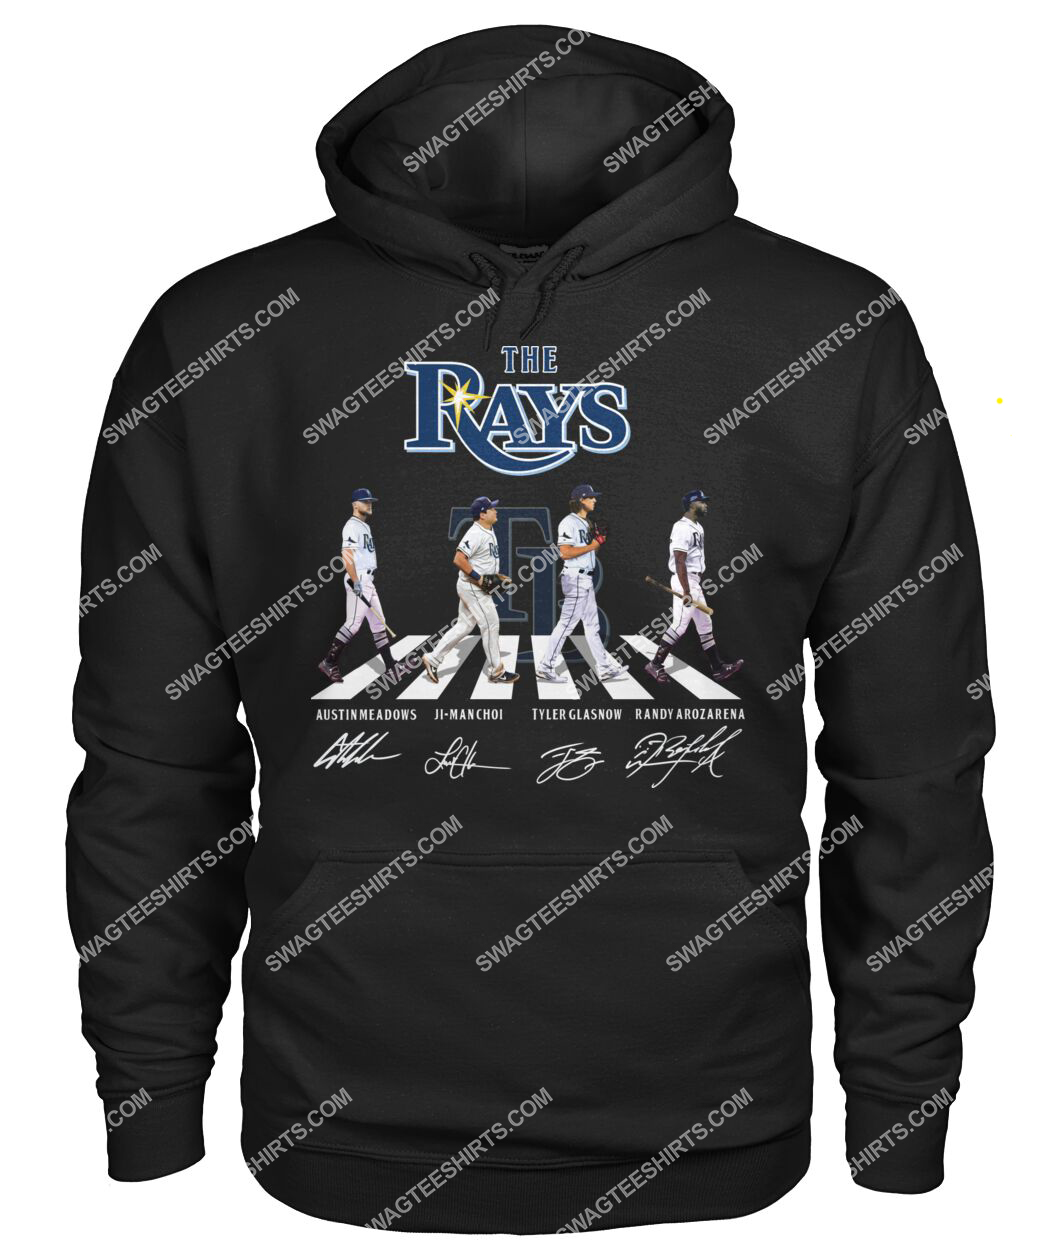 the tampa bay rays walking abbey road hoodie 1